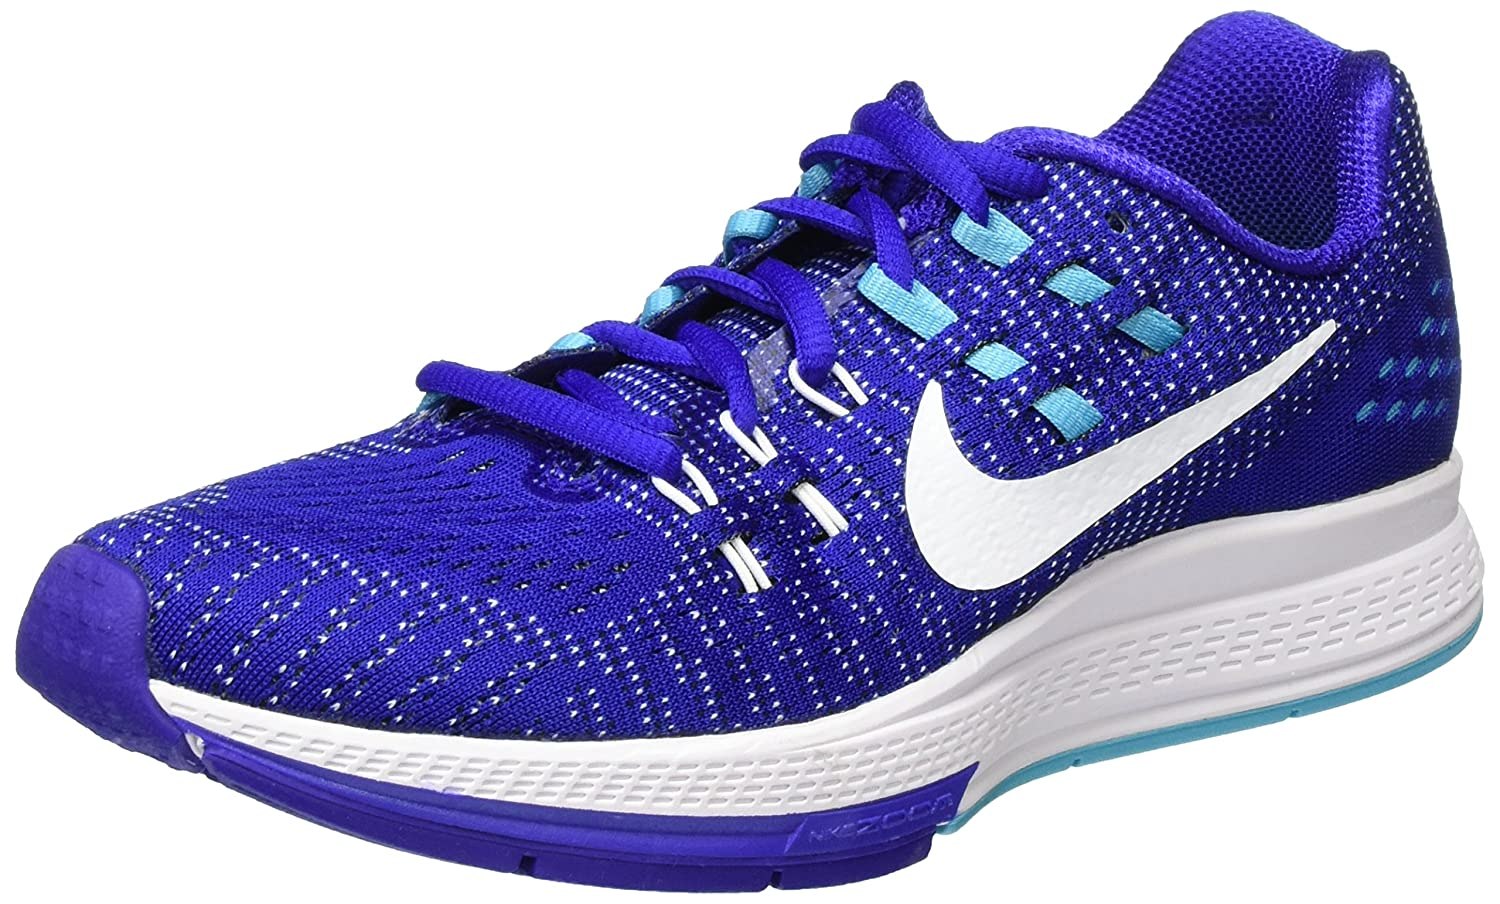 Nike Womens Air Zoom Structure 19 Running Trainers 806584 Sneakers Shoes